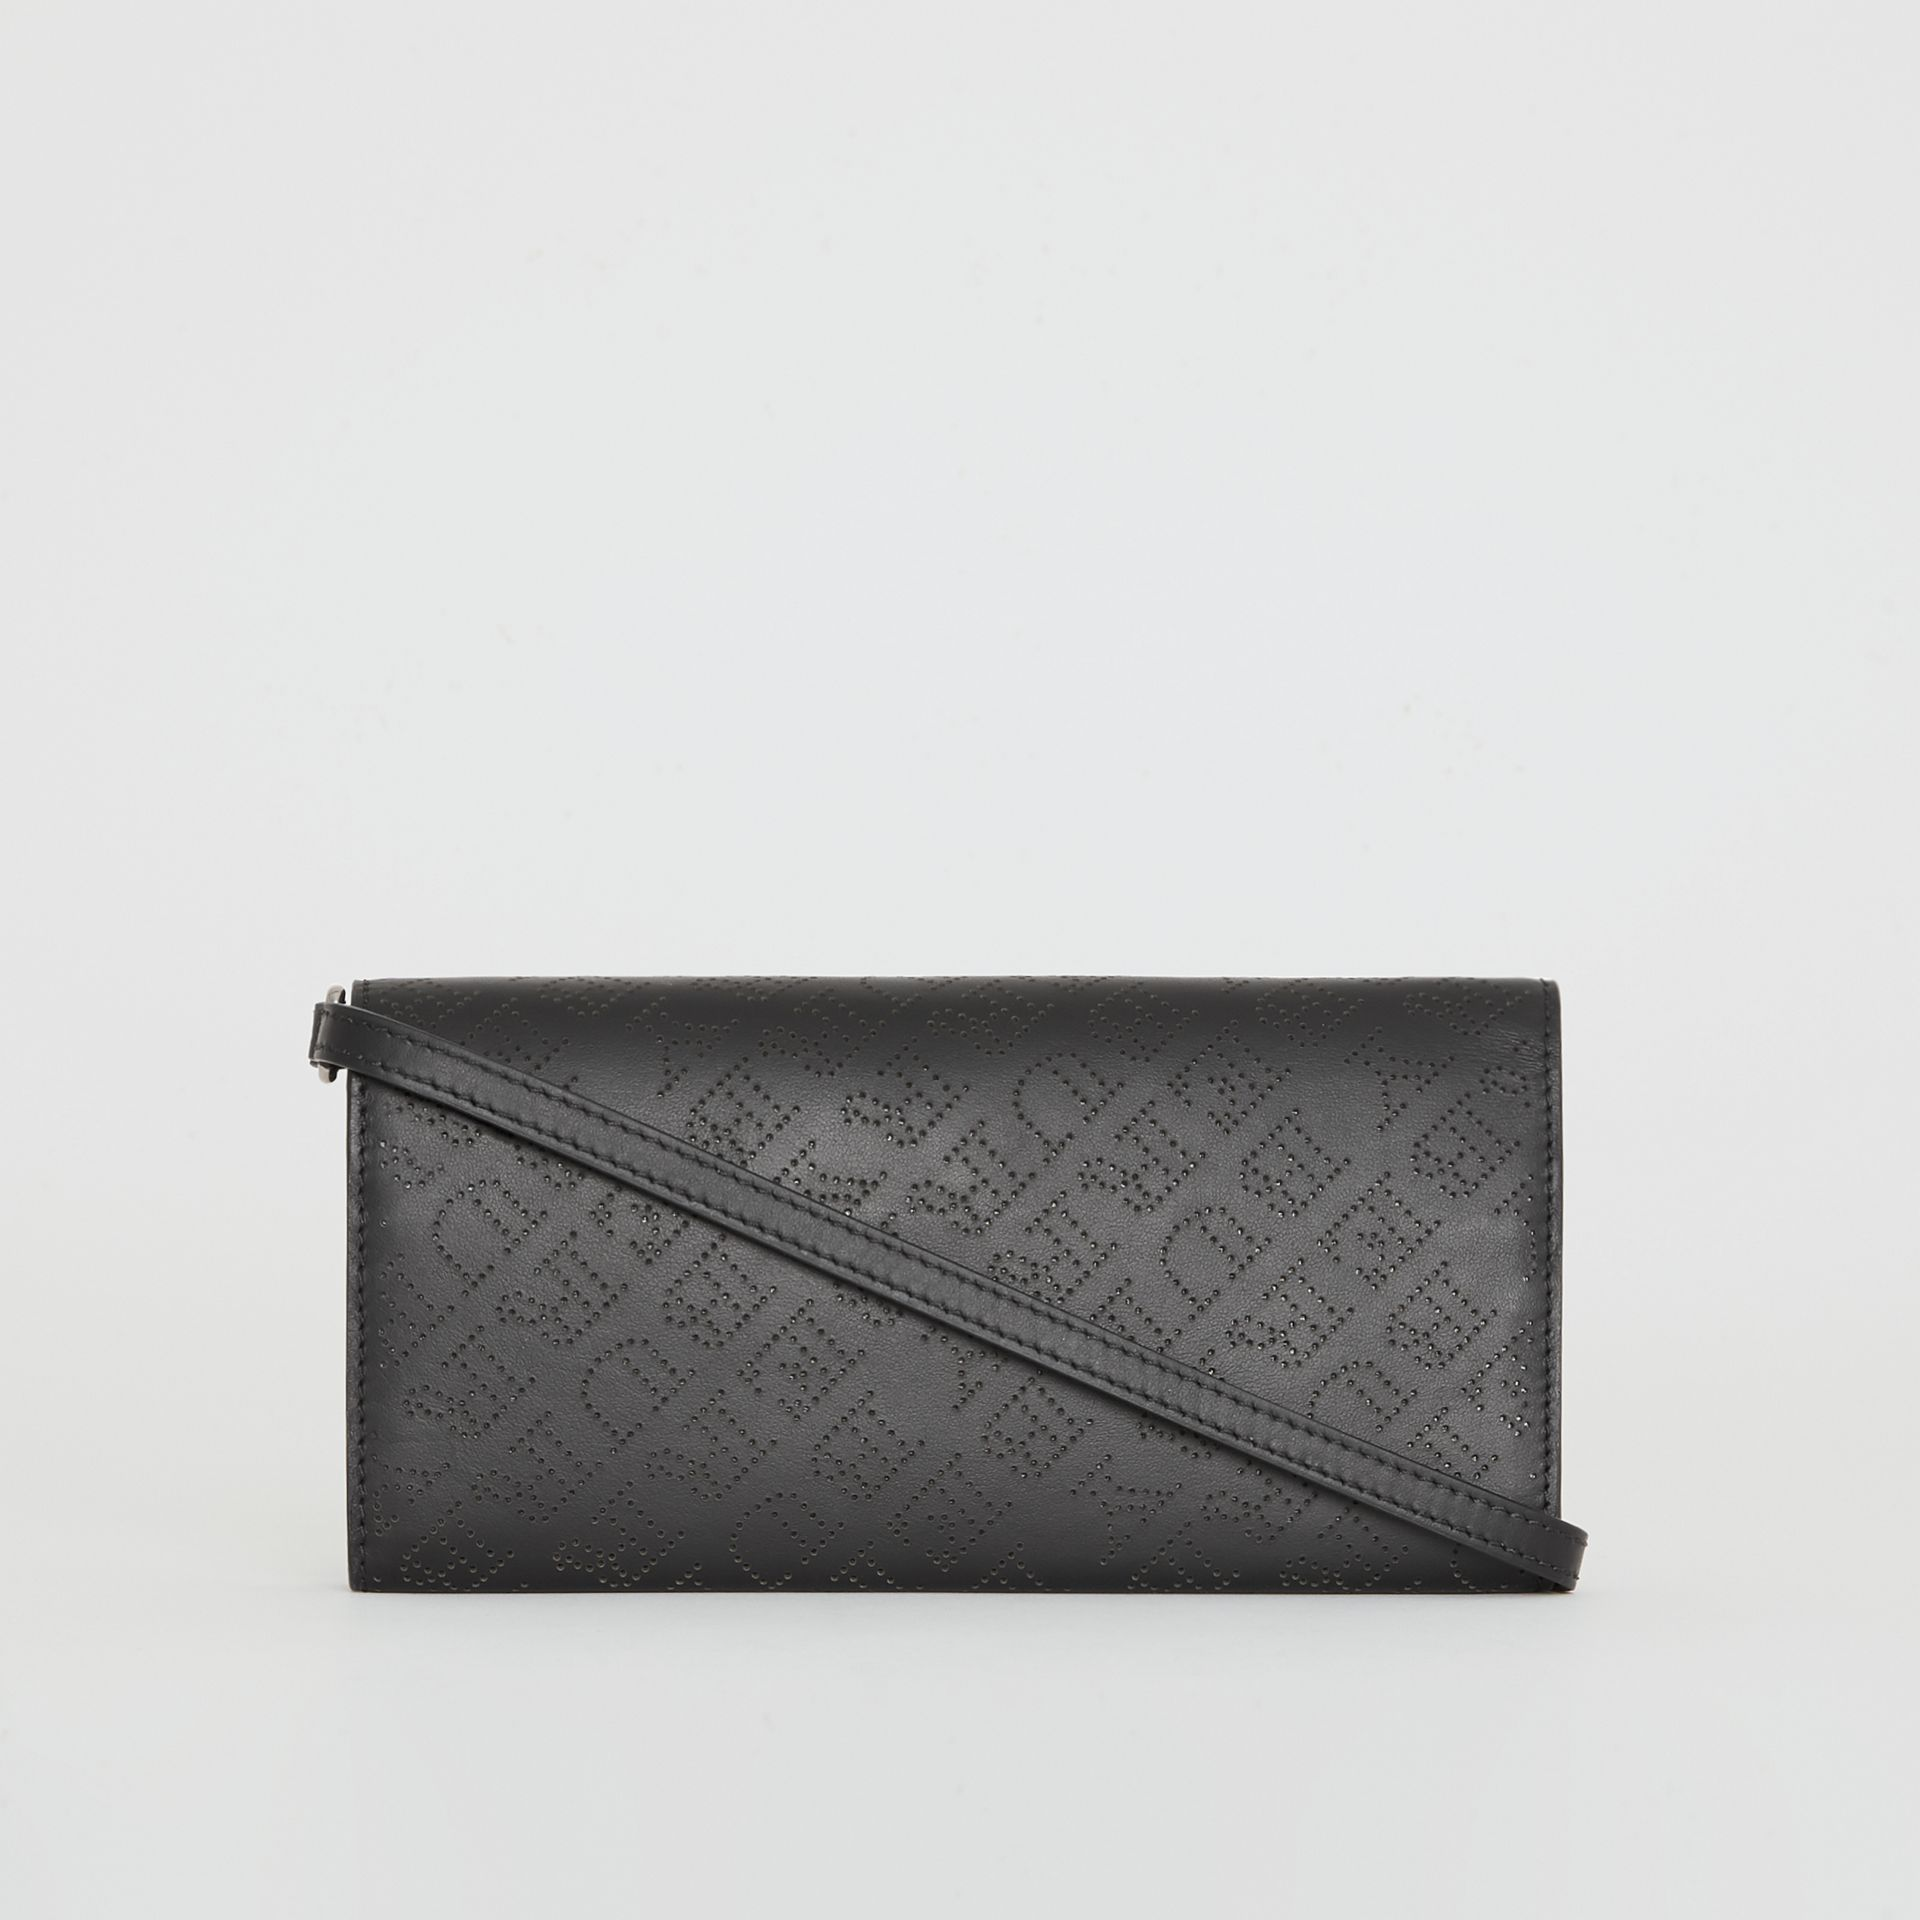 Perforated Logo Leather Wallet with Detachable Strap in Black - Women | Burberry Singapore - gallery image 7